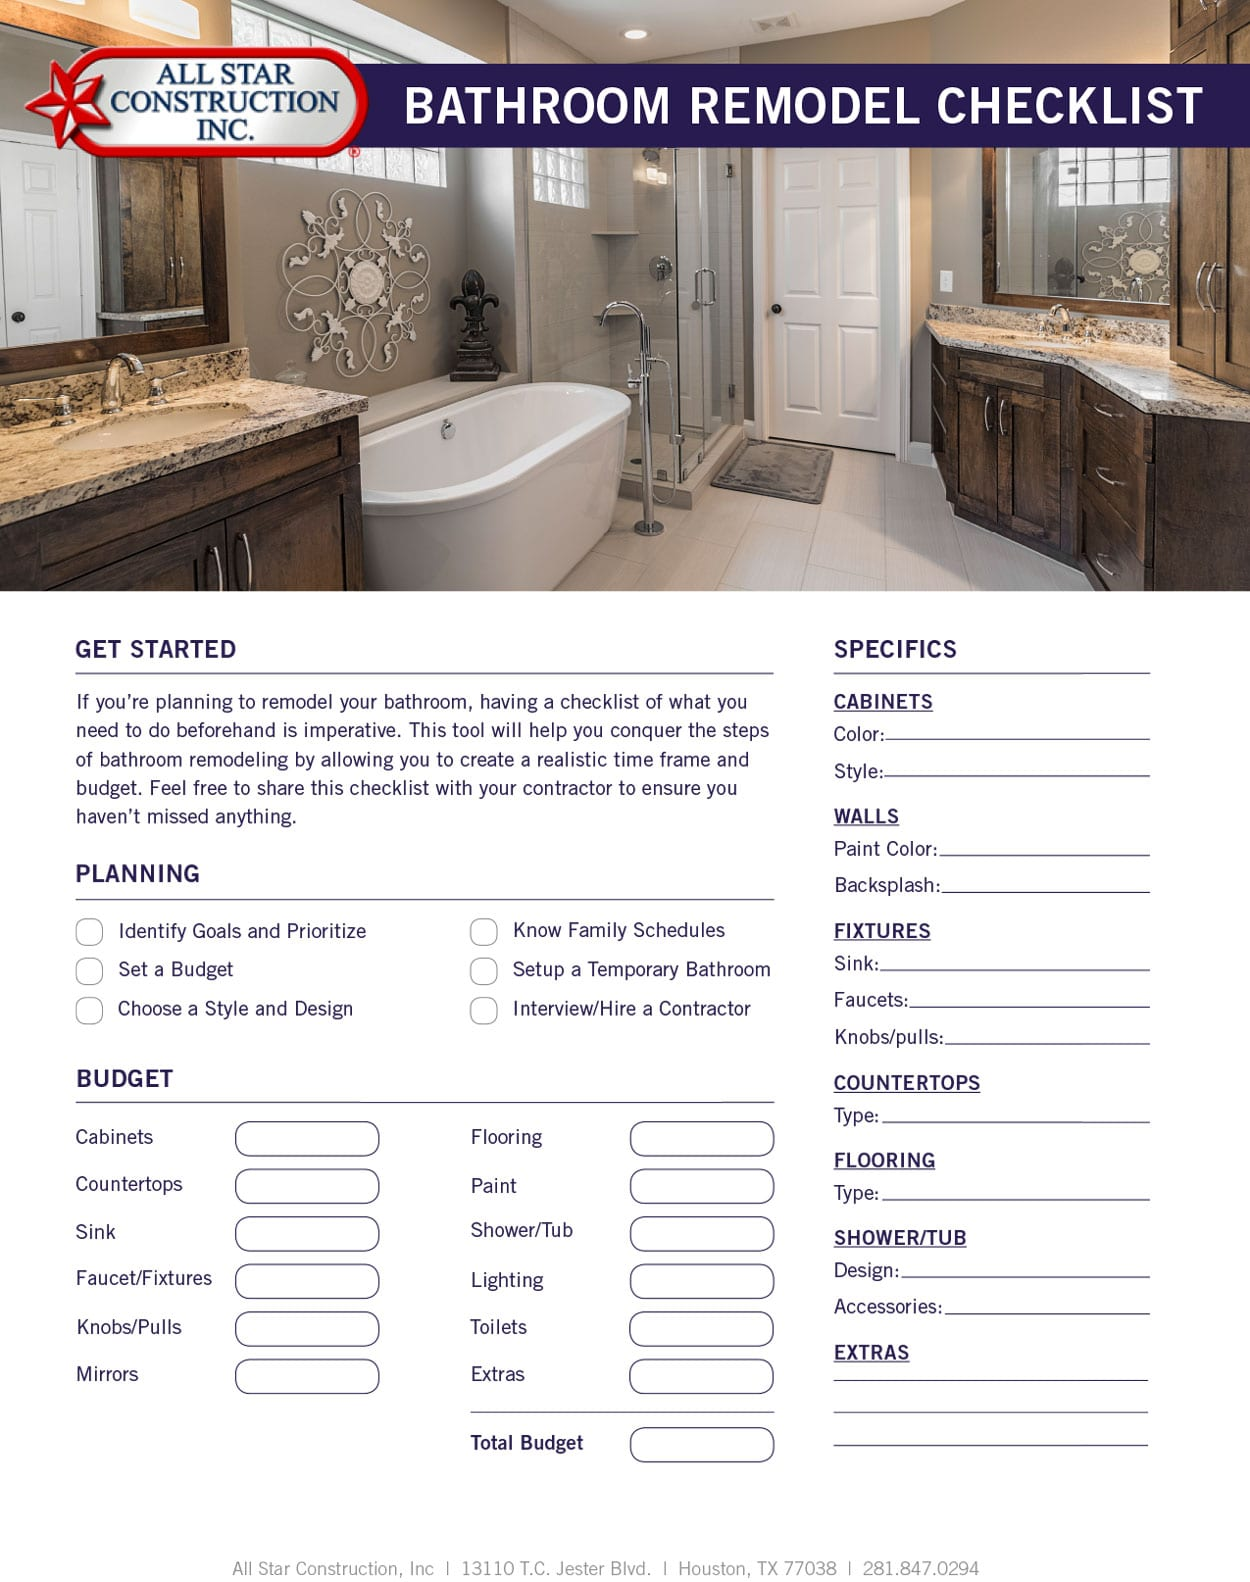 2018 Bathroom Remodel Checklist  All Star Construction